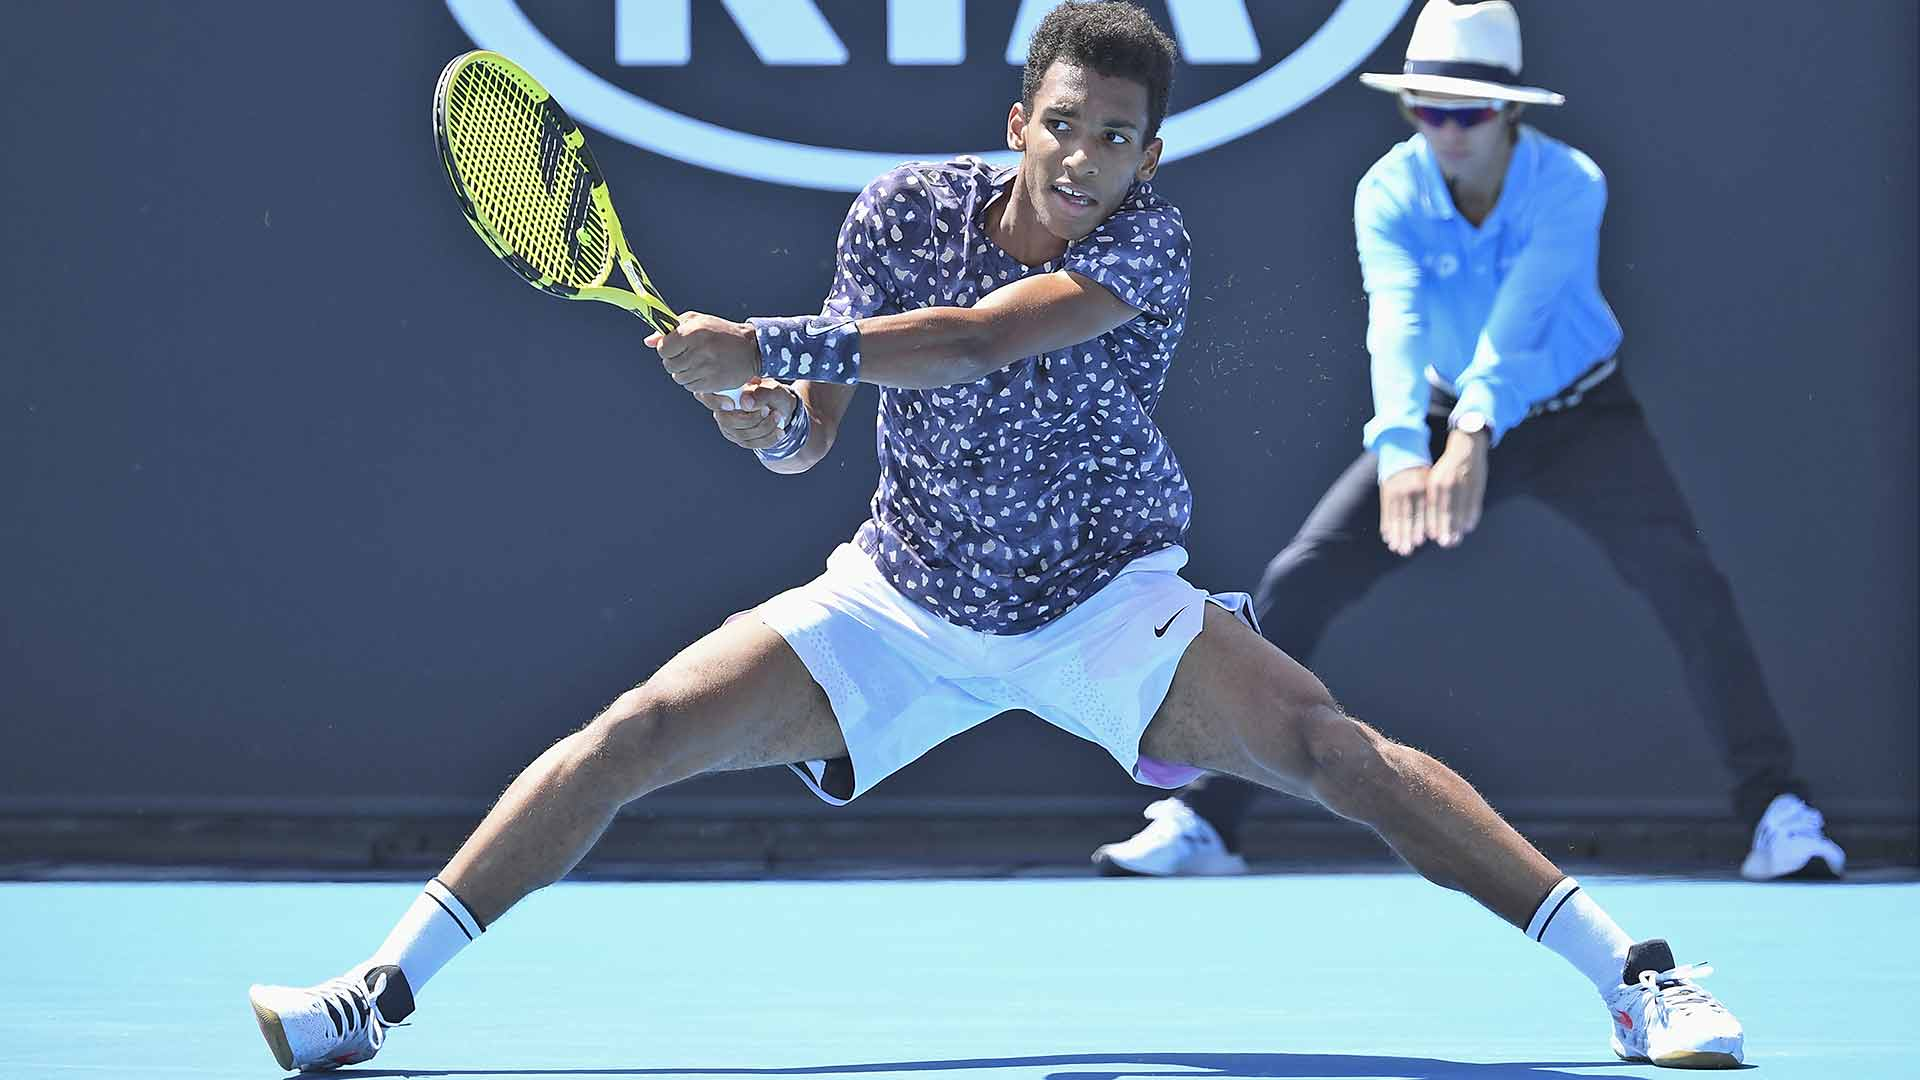 Felix Auger-Aliassime bows out in the first round of the Australian Open.